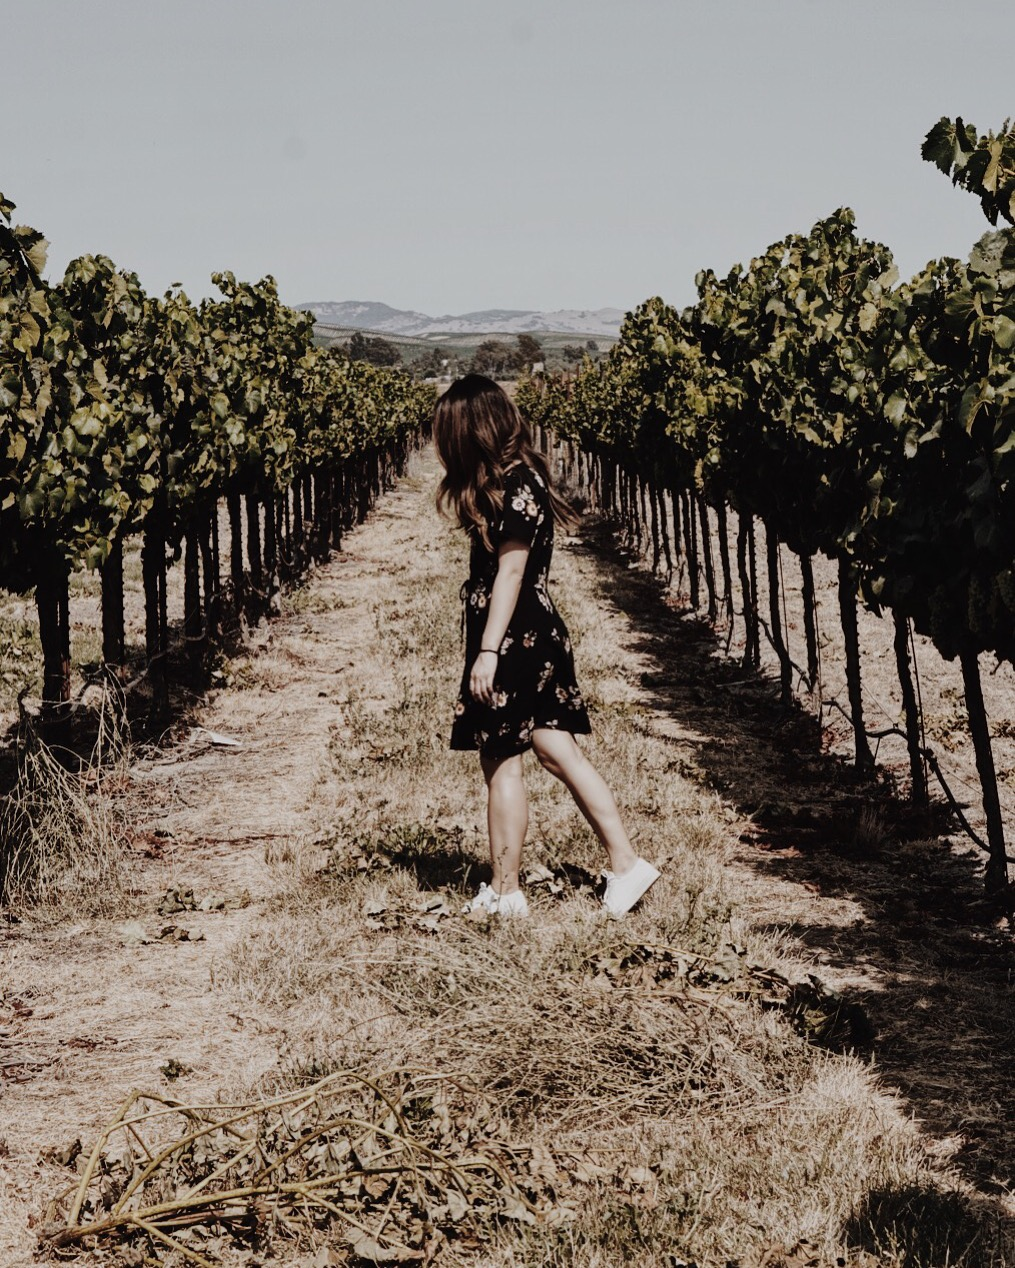 Abercrombie and Fitch Dress, Sonoma Wine Country Weekend